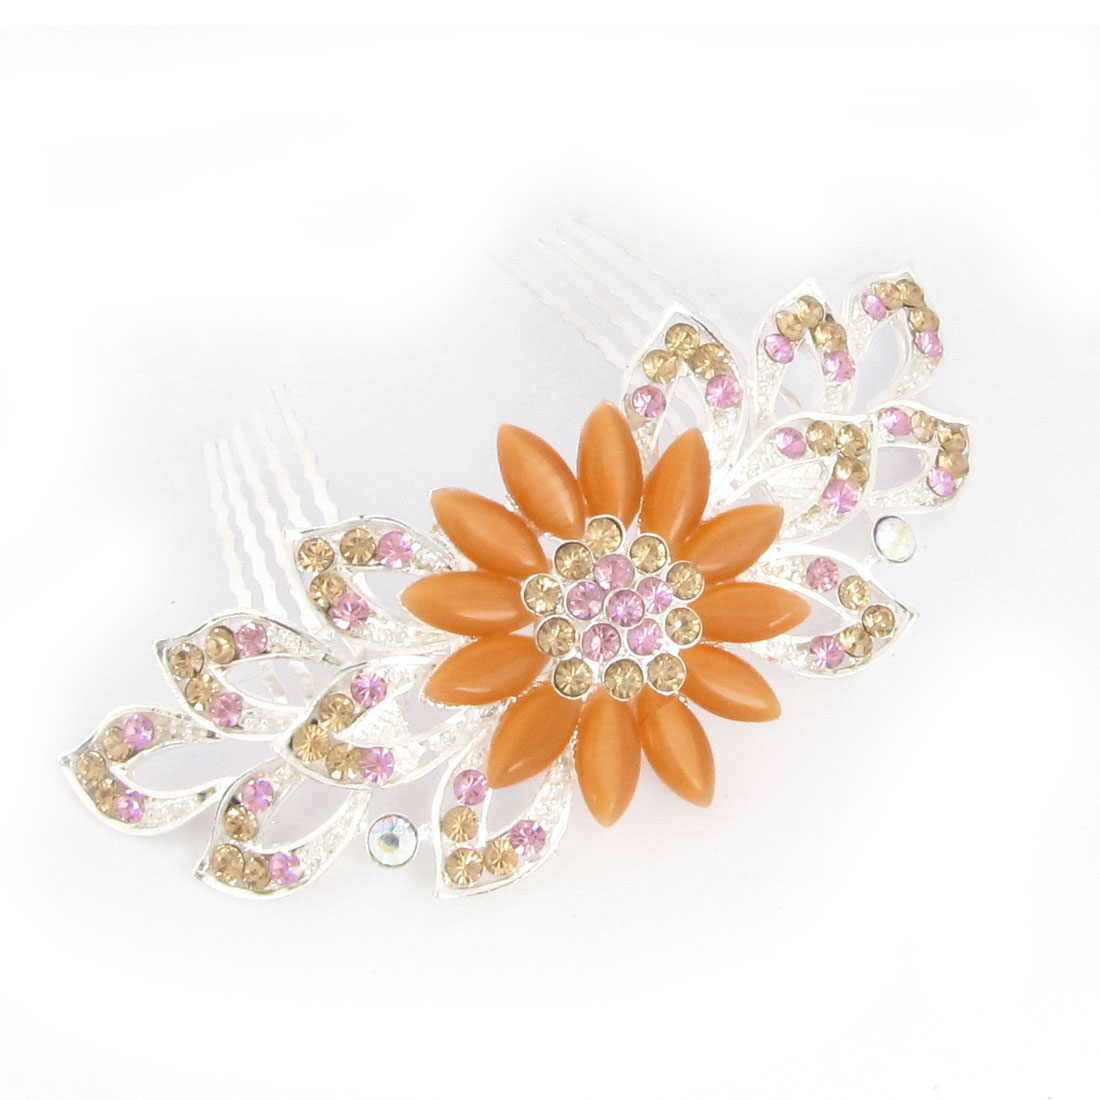 Ladies Rhinestone Peachpuff Plastic Flower 10 Teeth Metal Hair Comb Clip Clamp